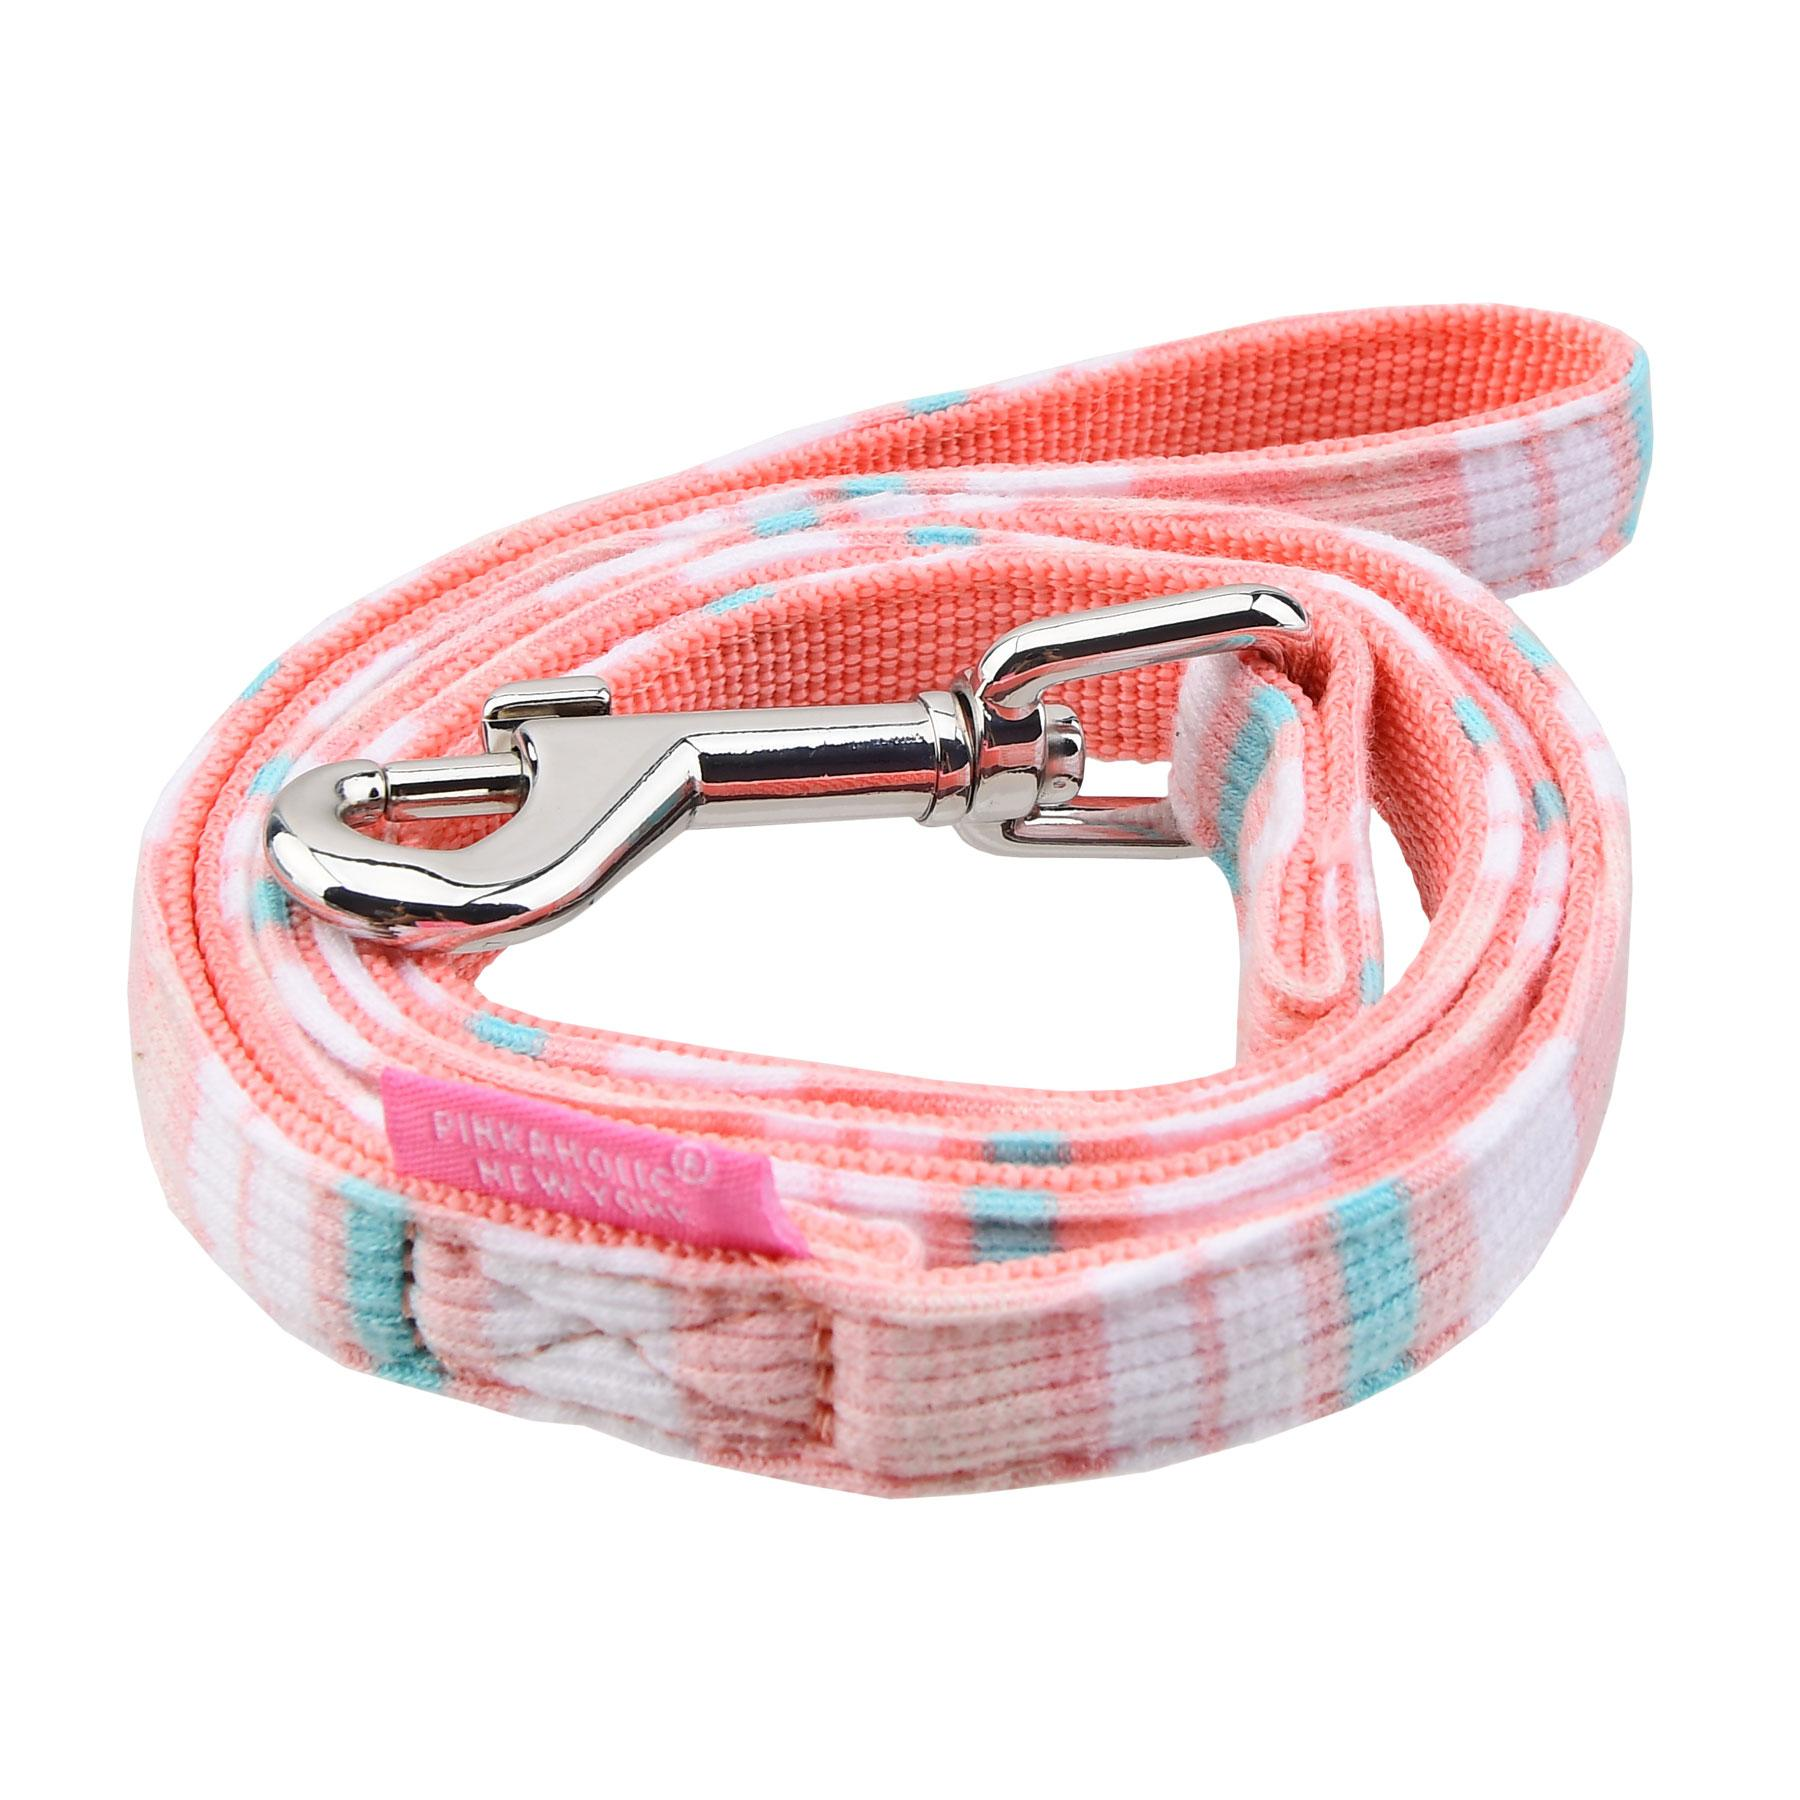 Cara Dog Leash by Pinkaholic - Pink